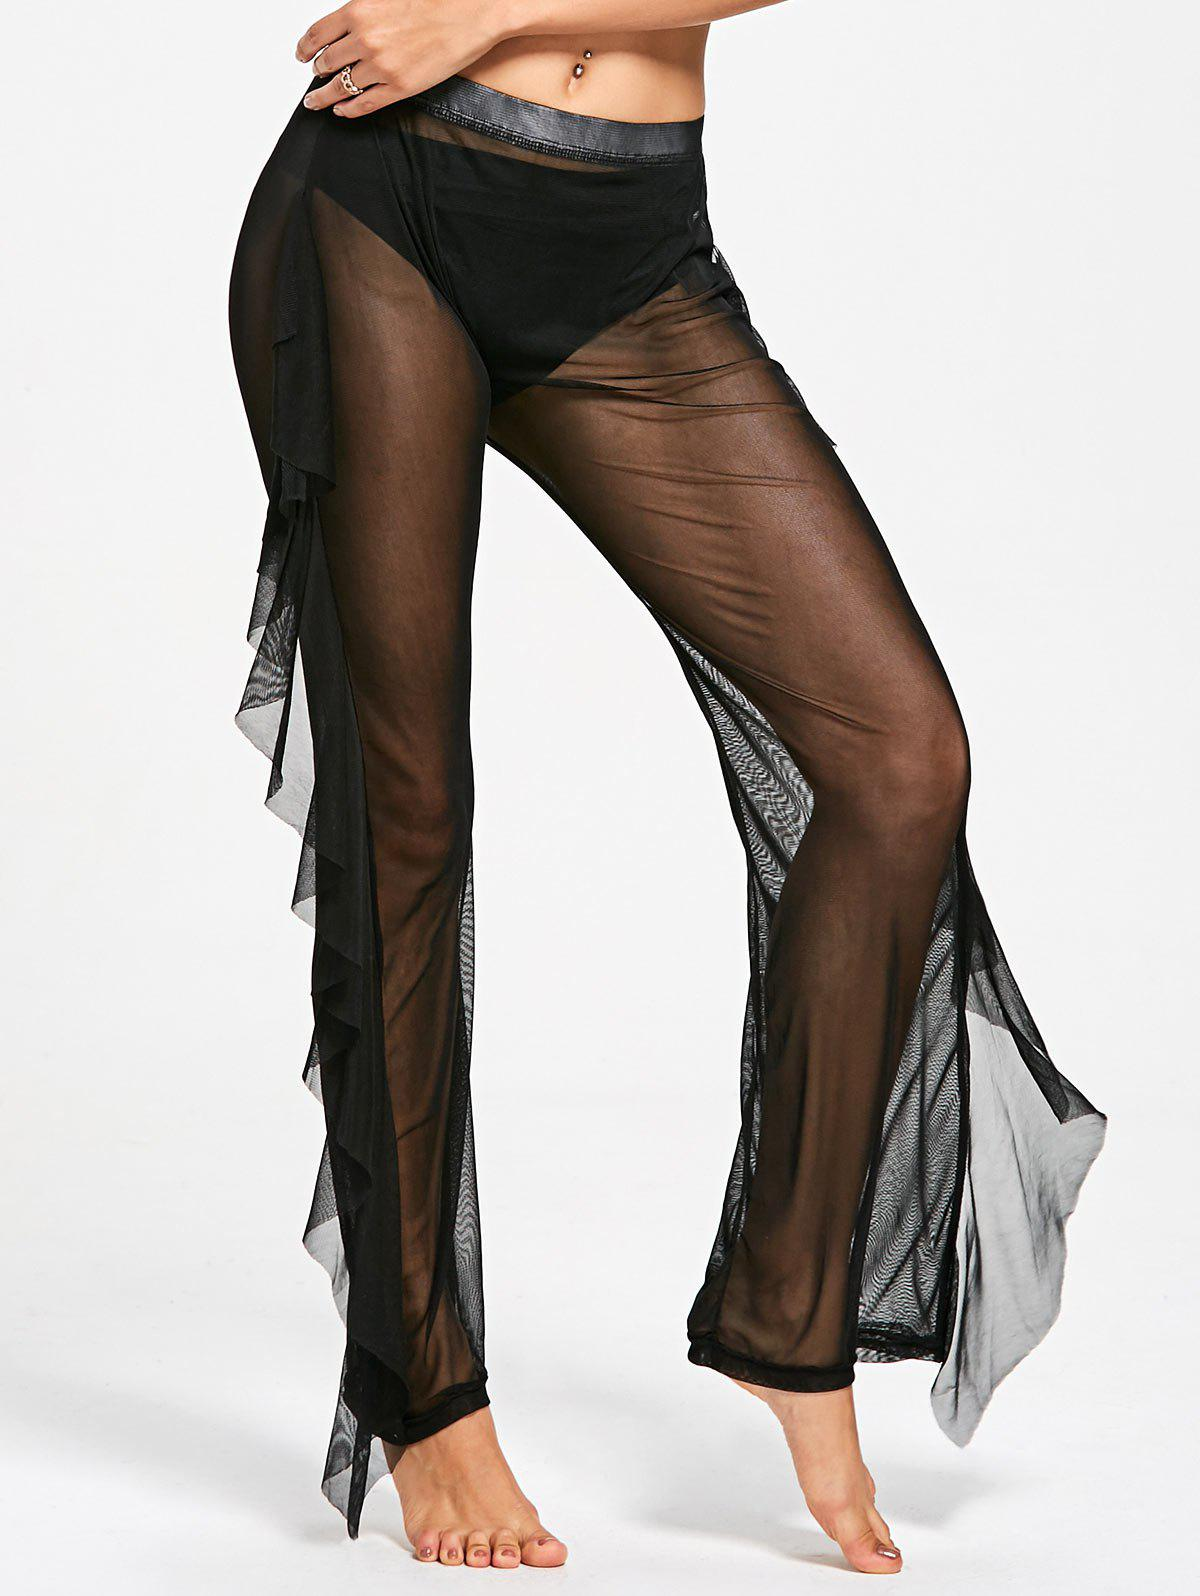 Ruffled Mesh See Through Cover Up Pants - BLACK M